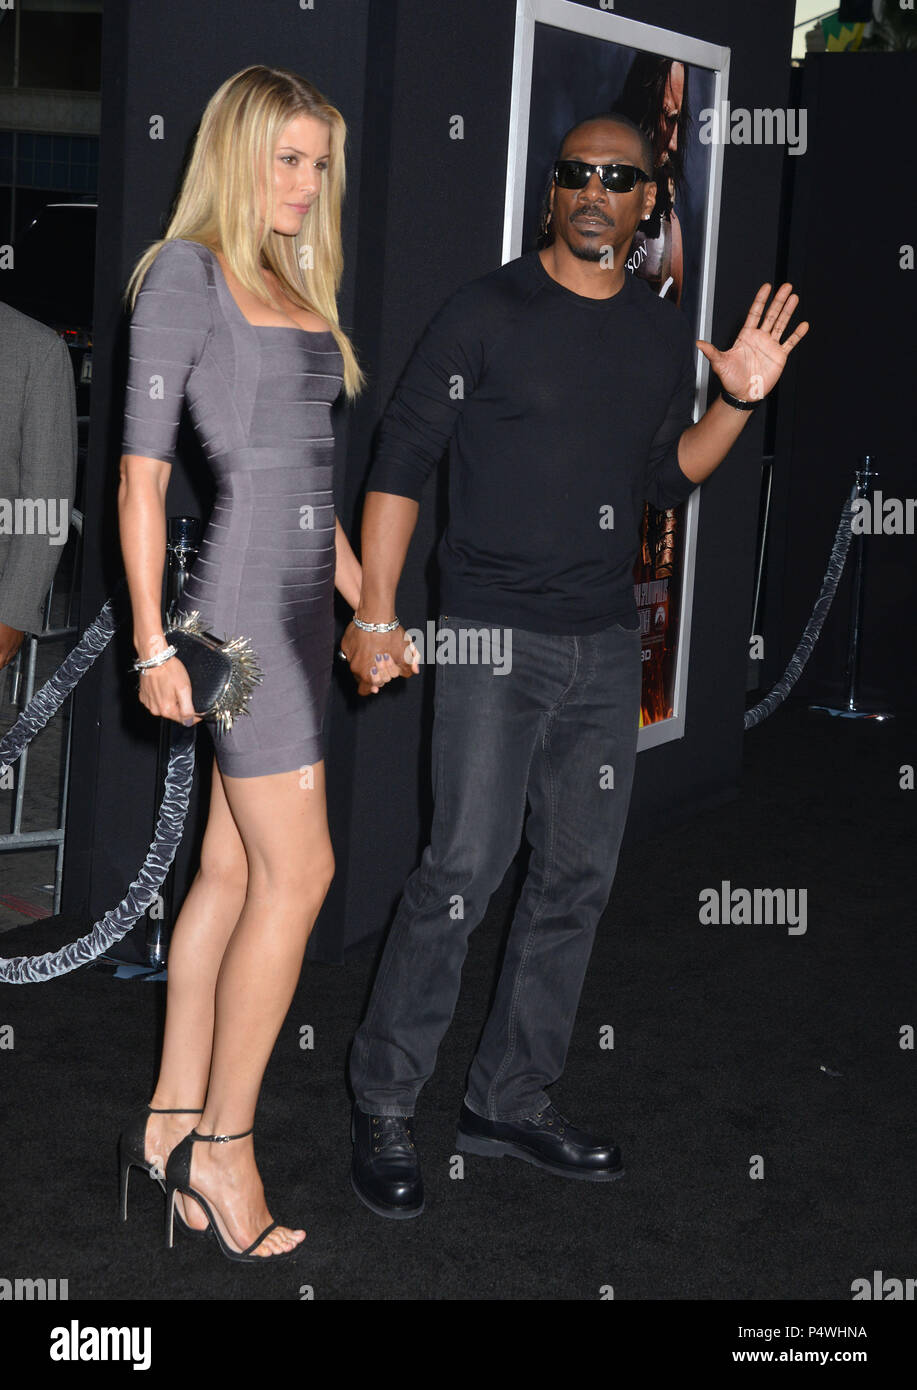 132 Best Images About Xdress On Pinterest: Eddie Murphy, Paige Butcher 132 At The Hercules Premiere